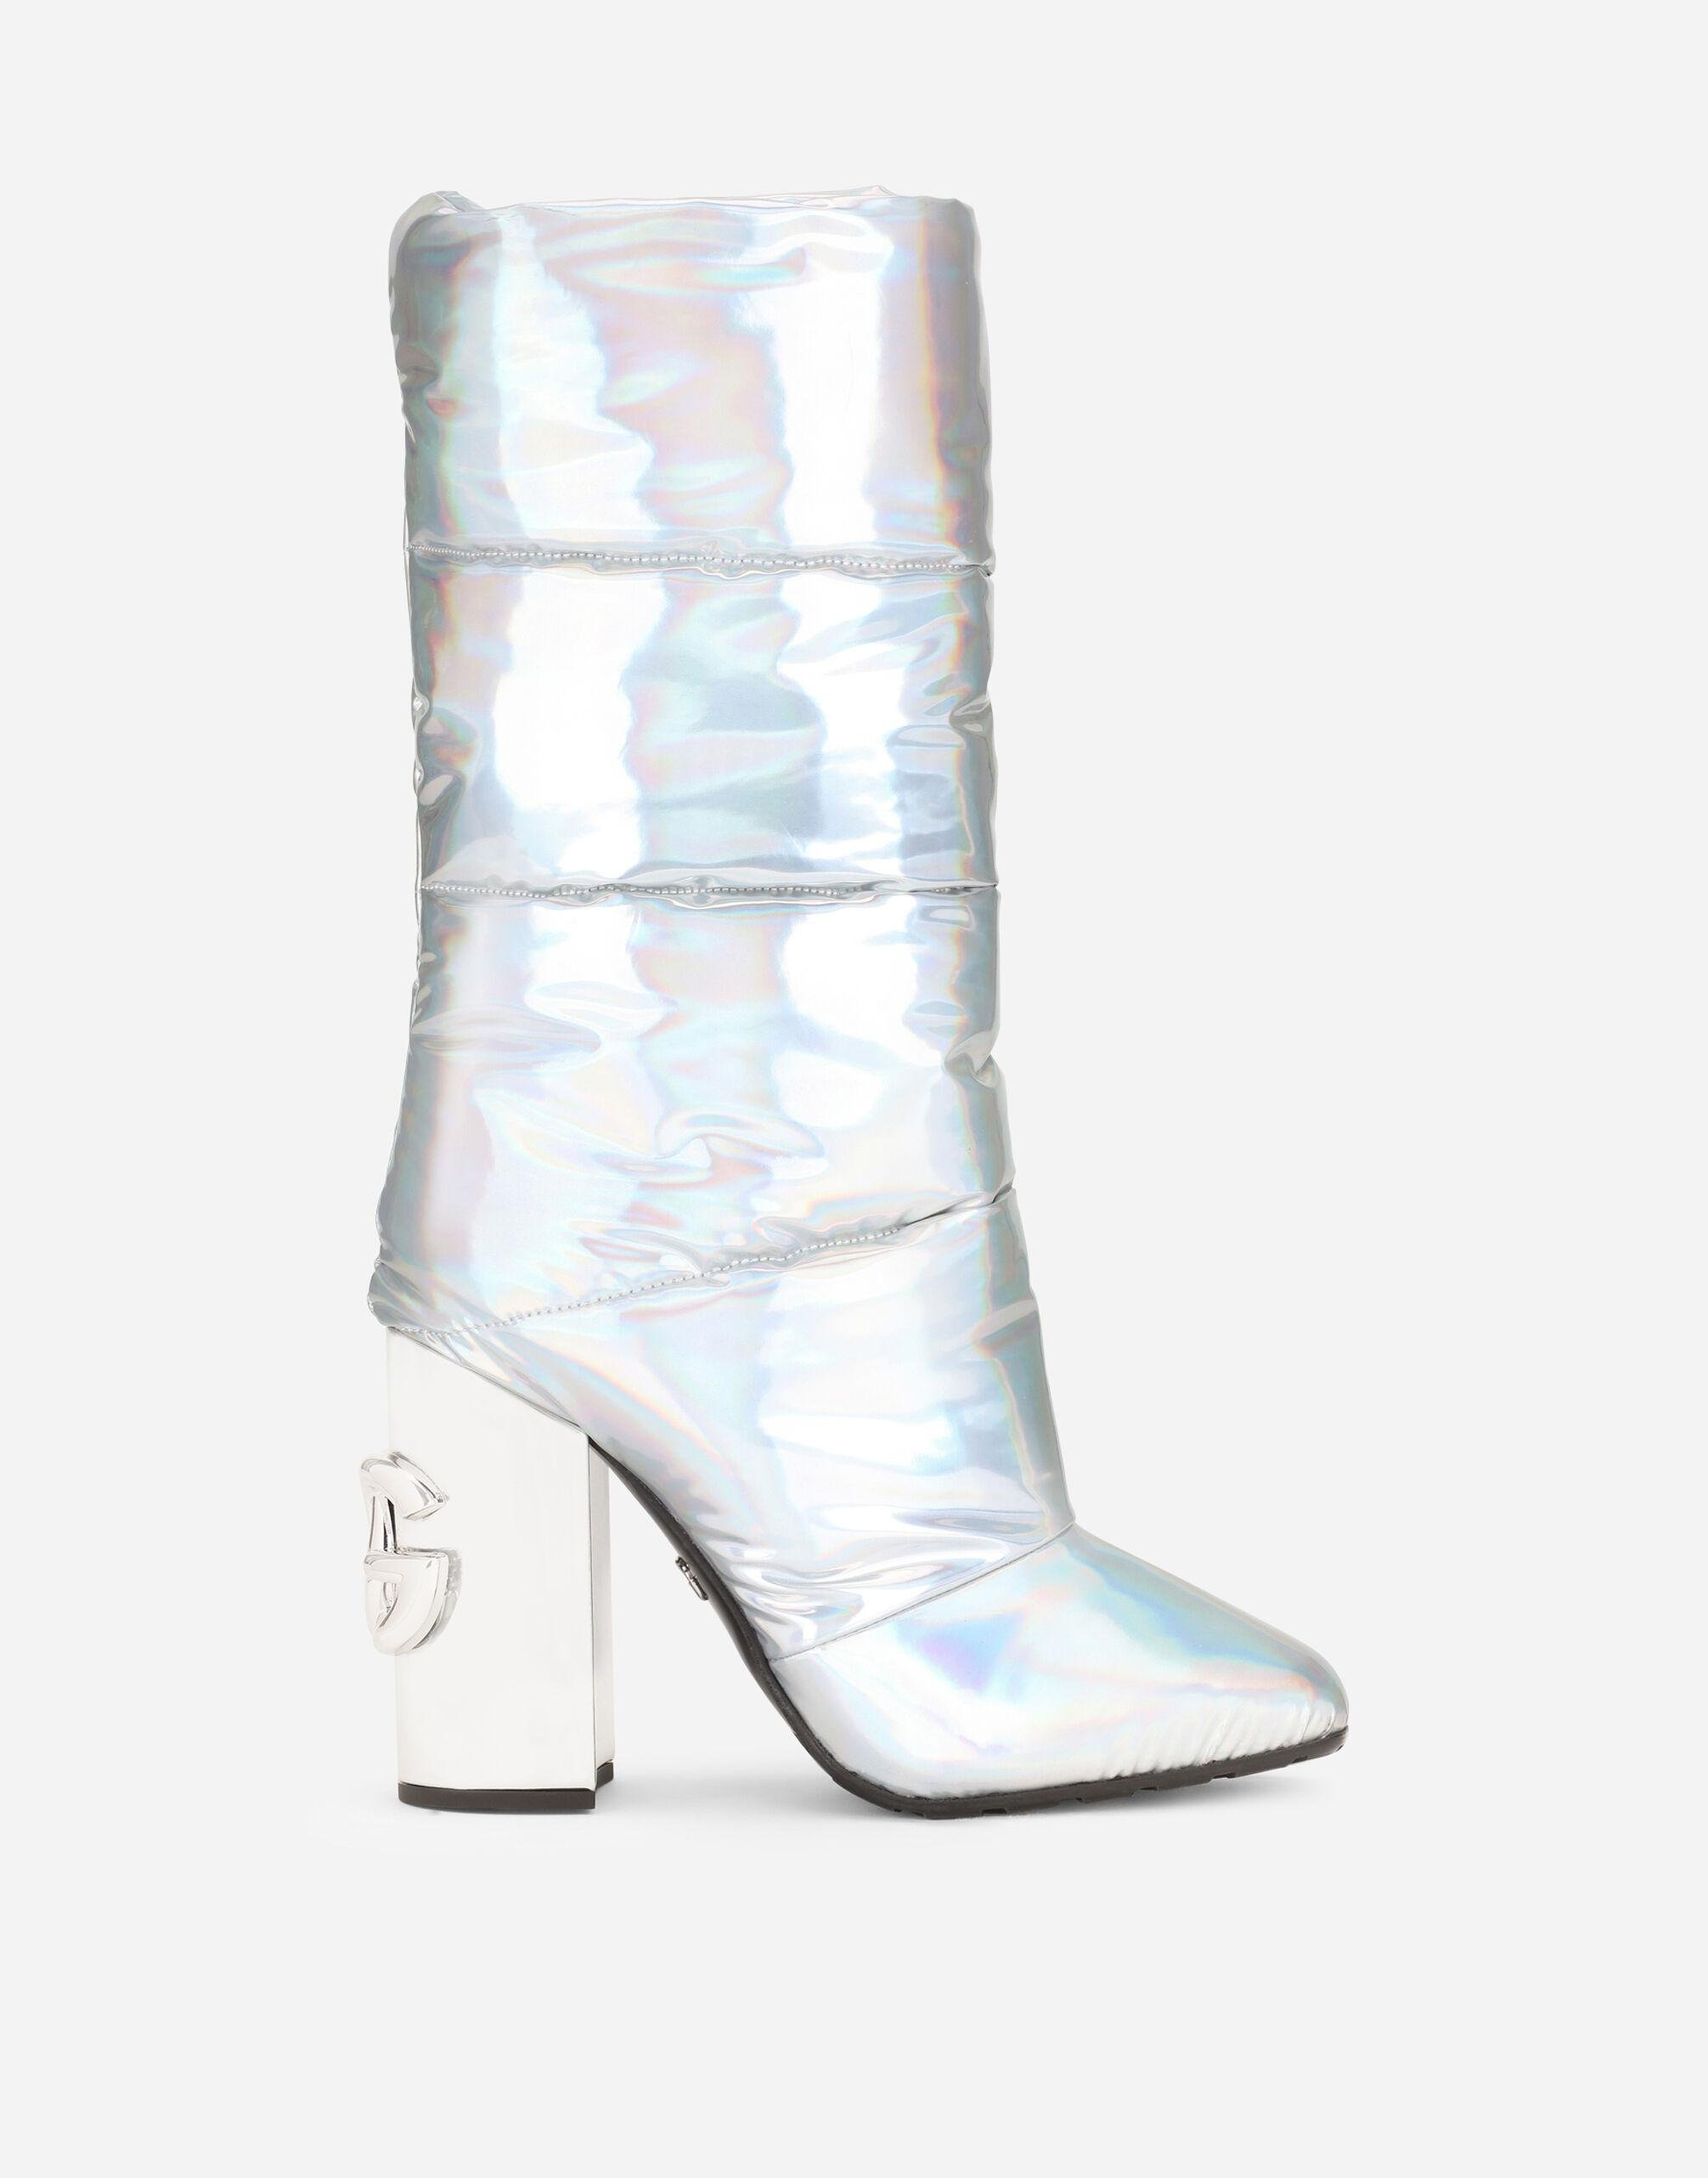 Holographic-effect fabric boots